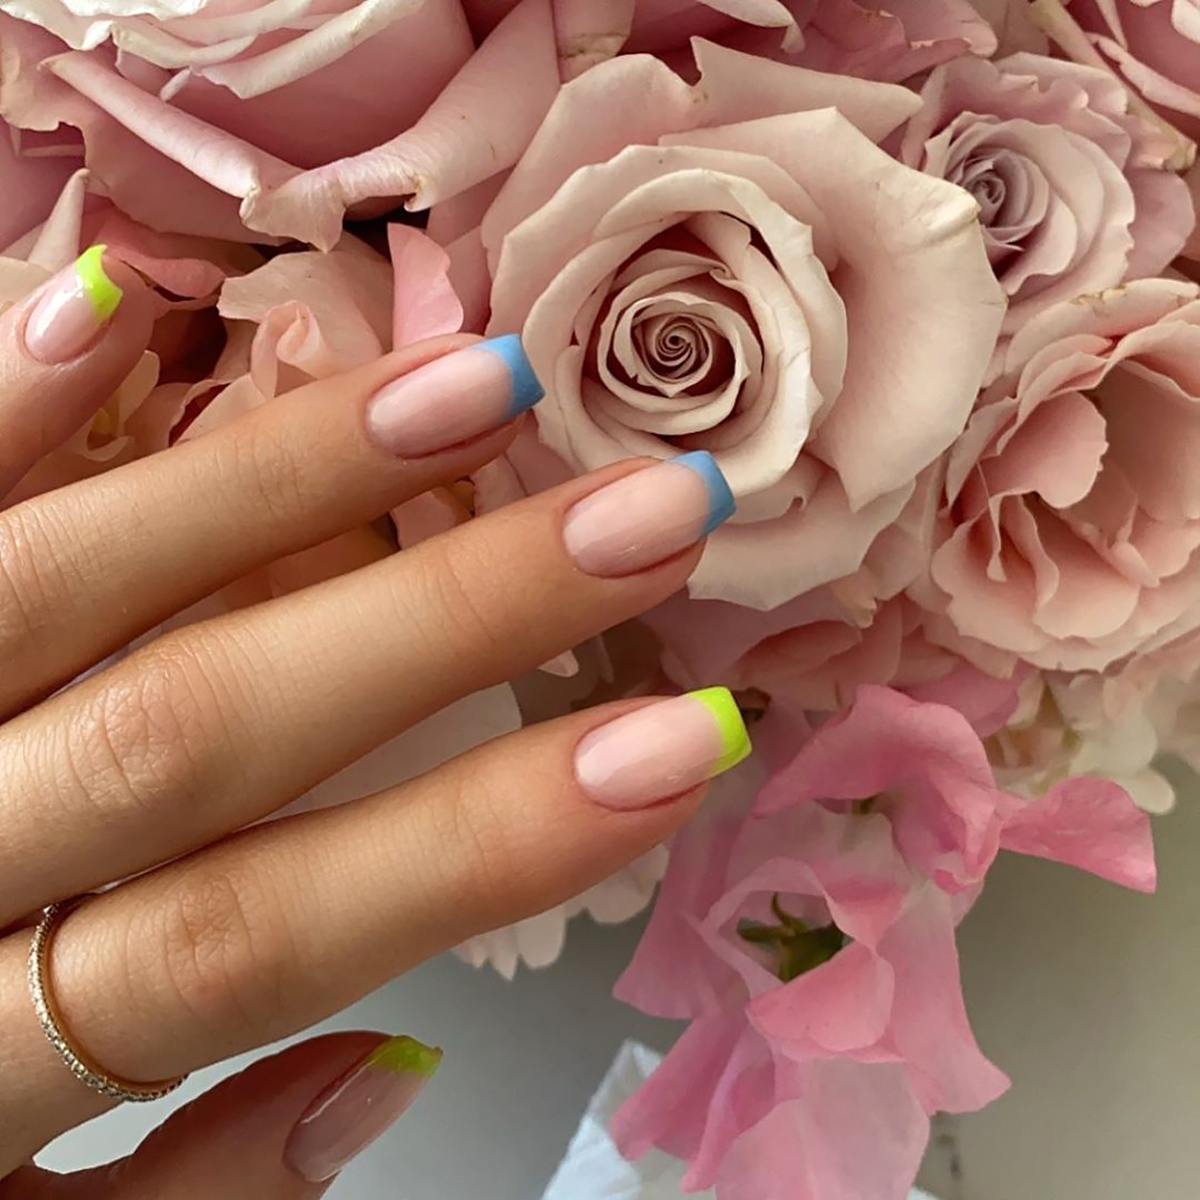 Kylie Jenner And More Celeb Nail Art Trend Inspiration Summer 2020